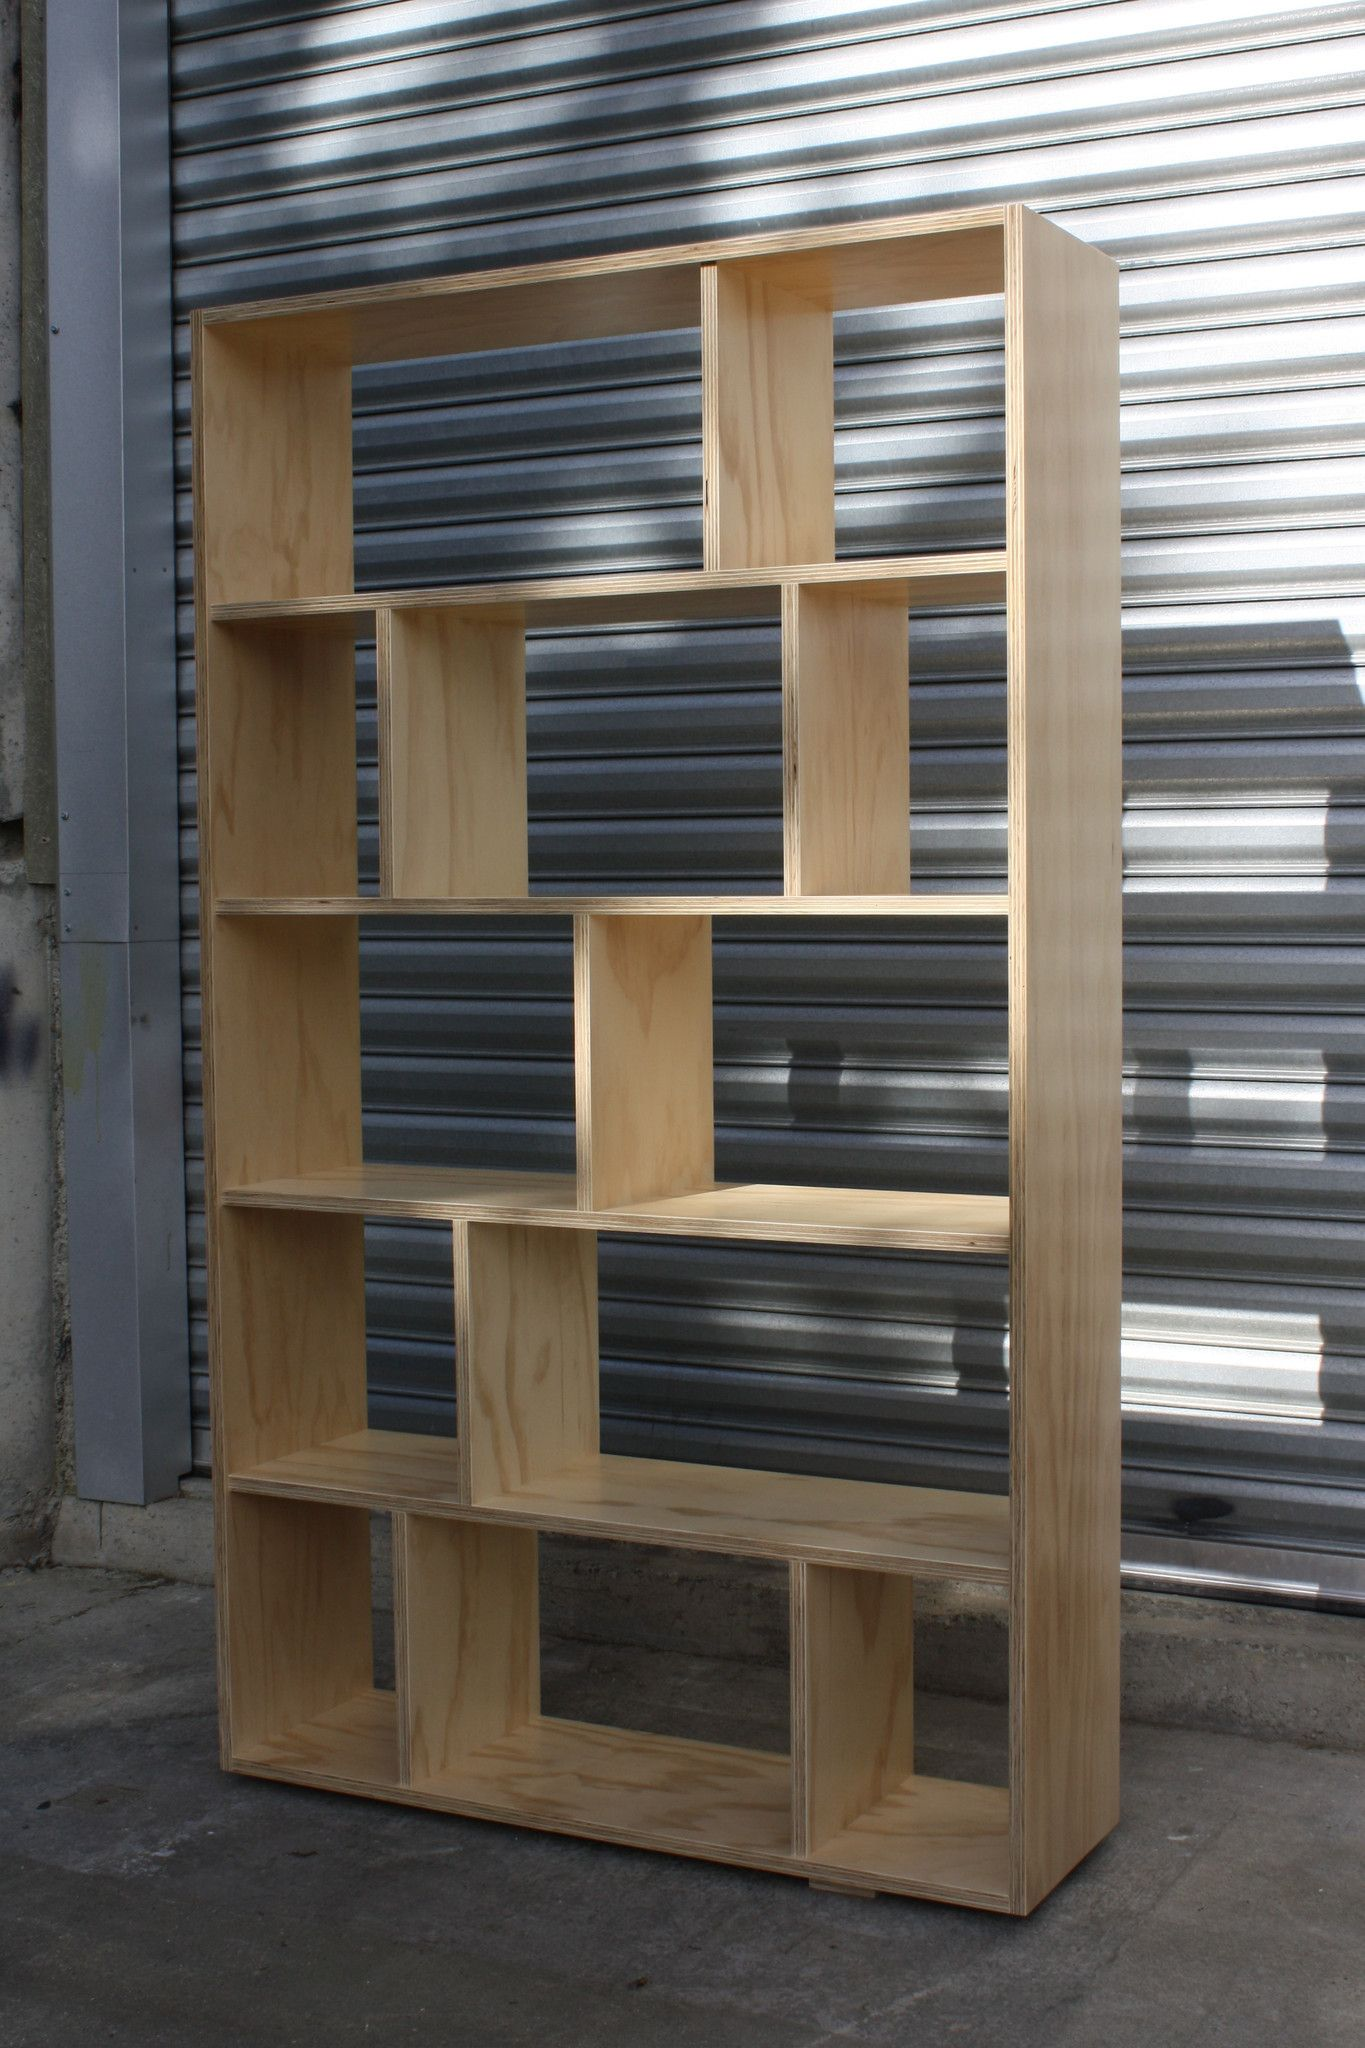 new zealand grown plywood bookshelf made in brick like